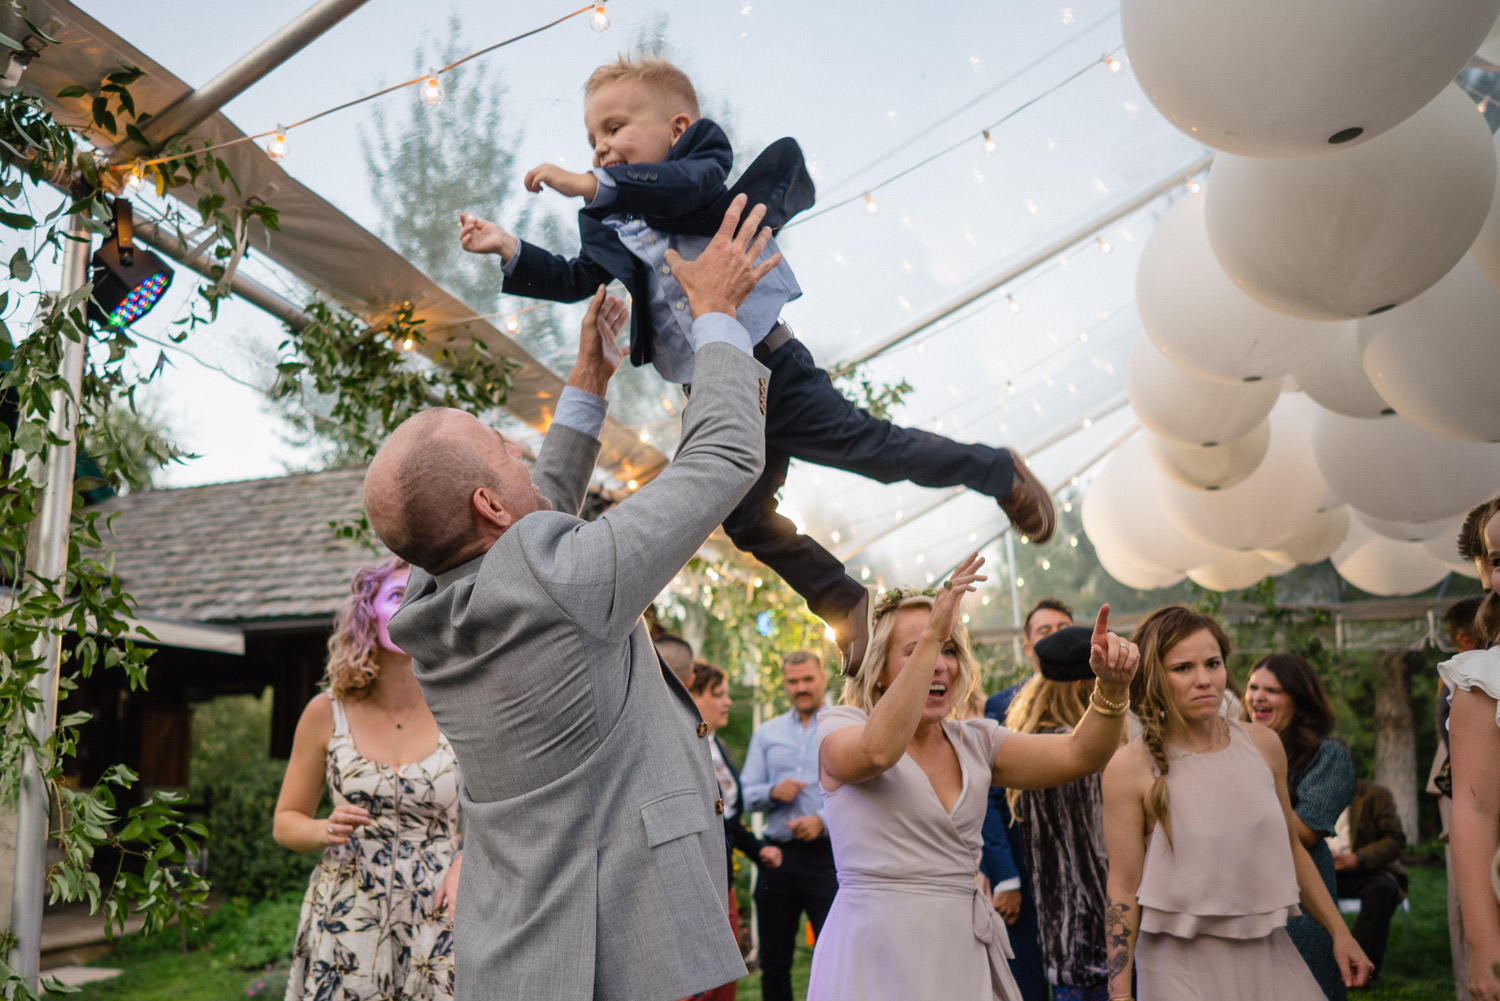 man tossing kid celebration outdoor wedding